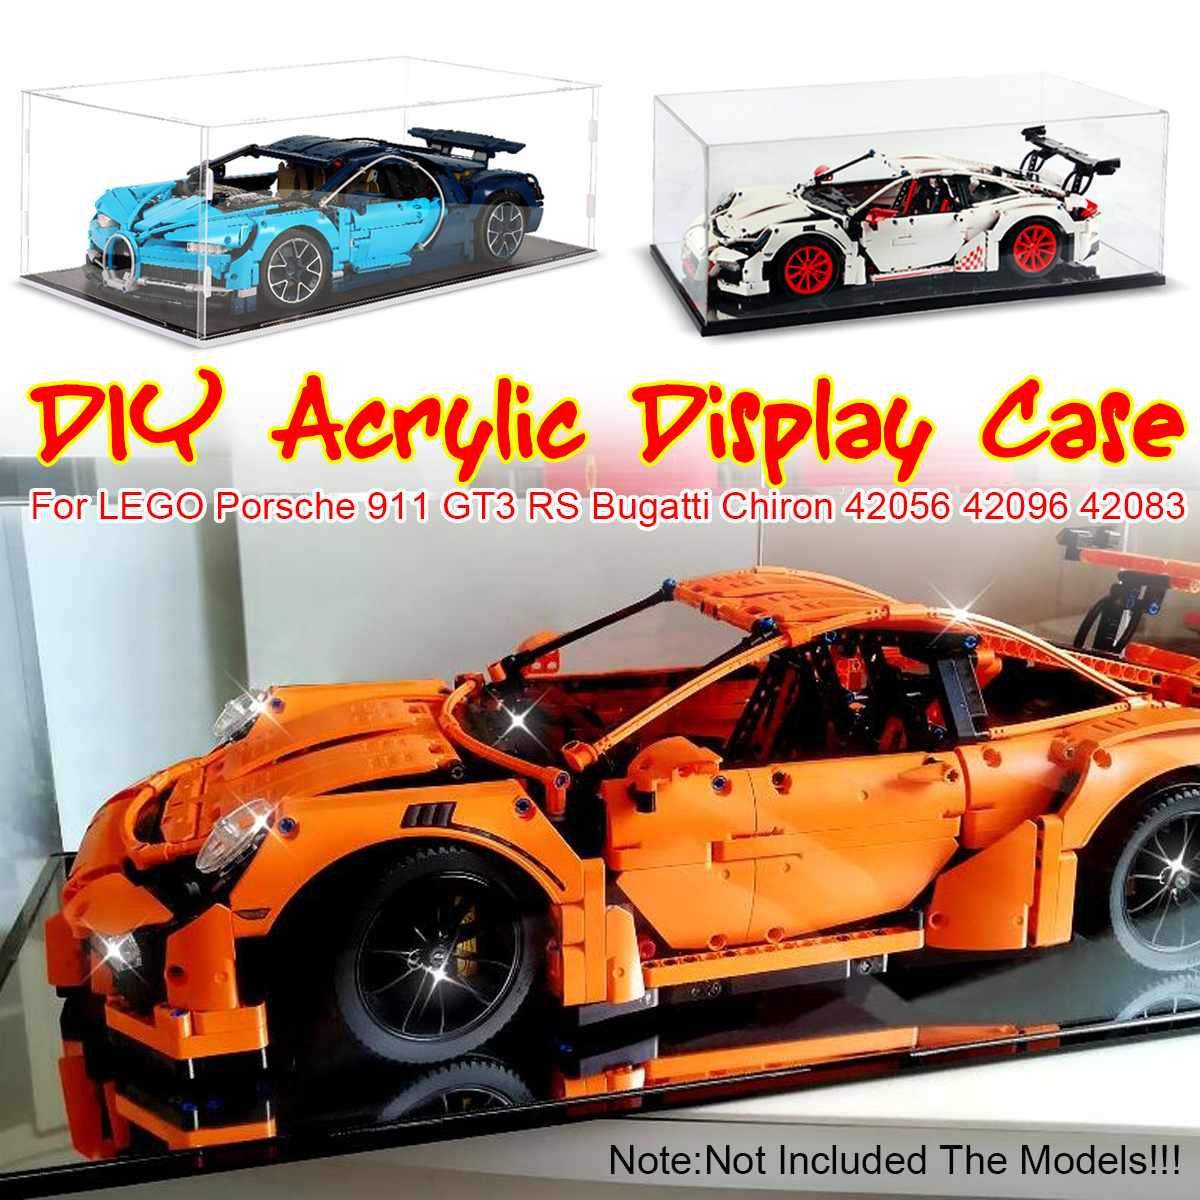 Acrylic Display Case for Lego 42056 for Bugatti Chiron for Porsche 911 GT3 RS Technic Series Toy Bricks ( Model not Included) image